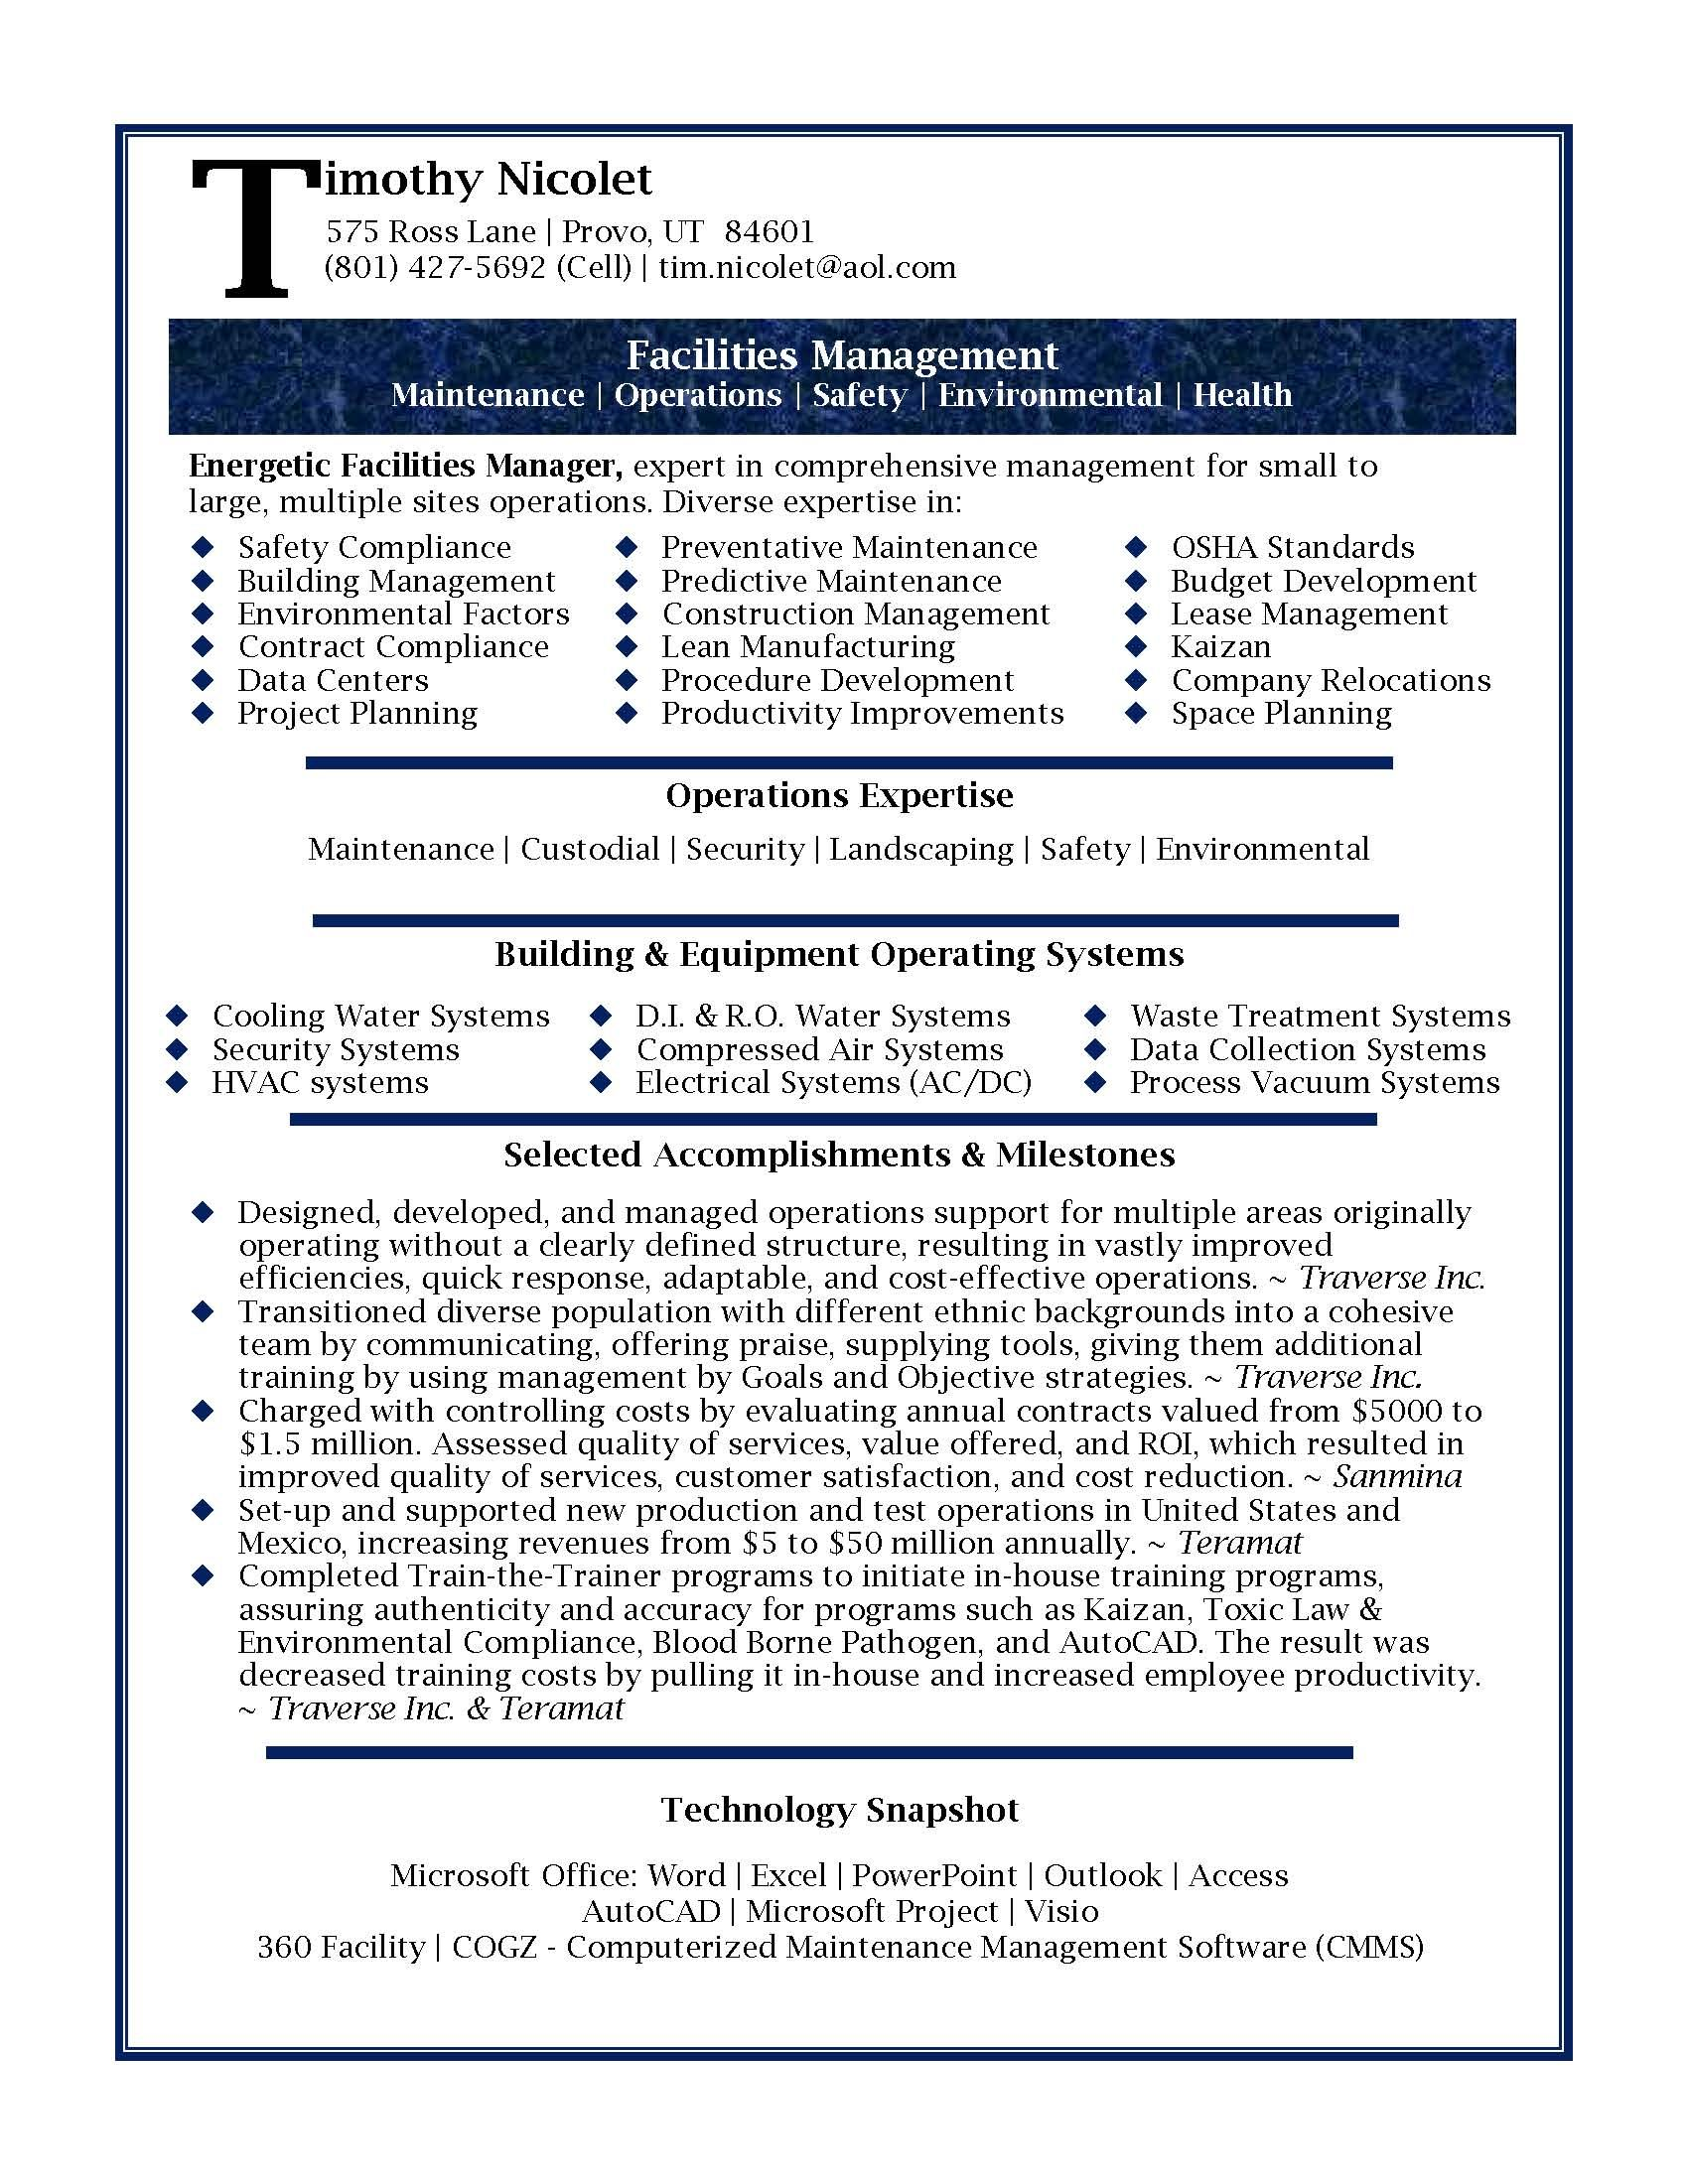 resume samples | Professional Facilities Manager Resume sample ...